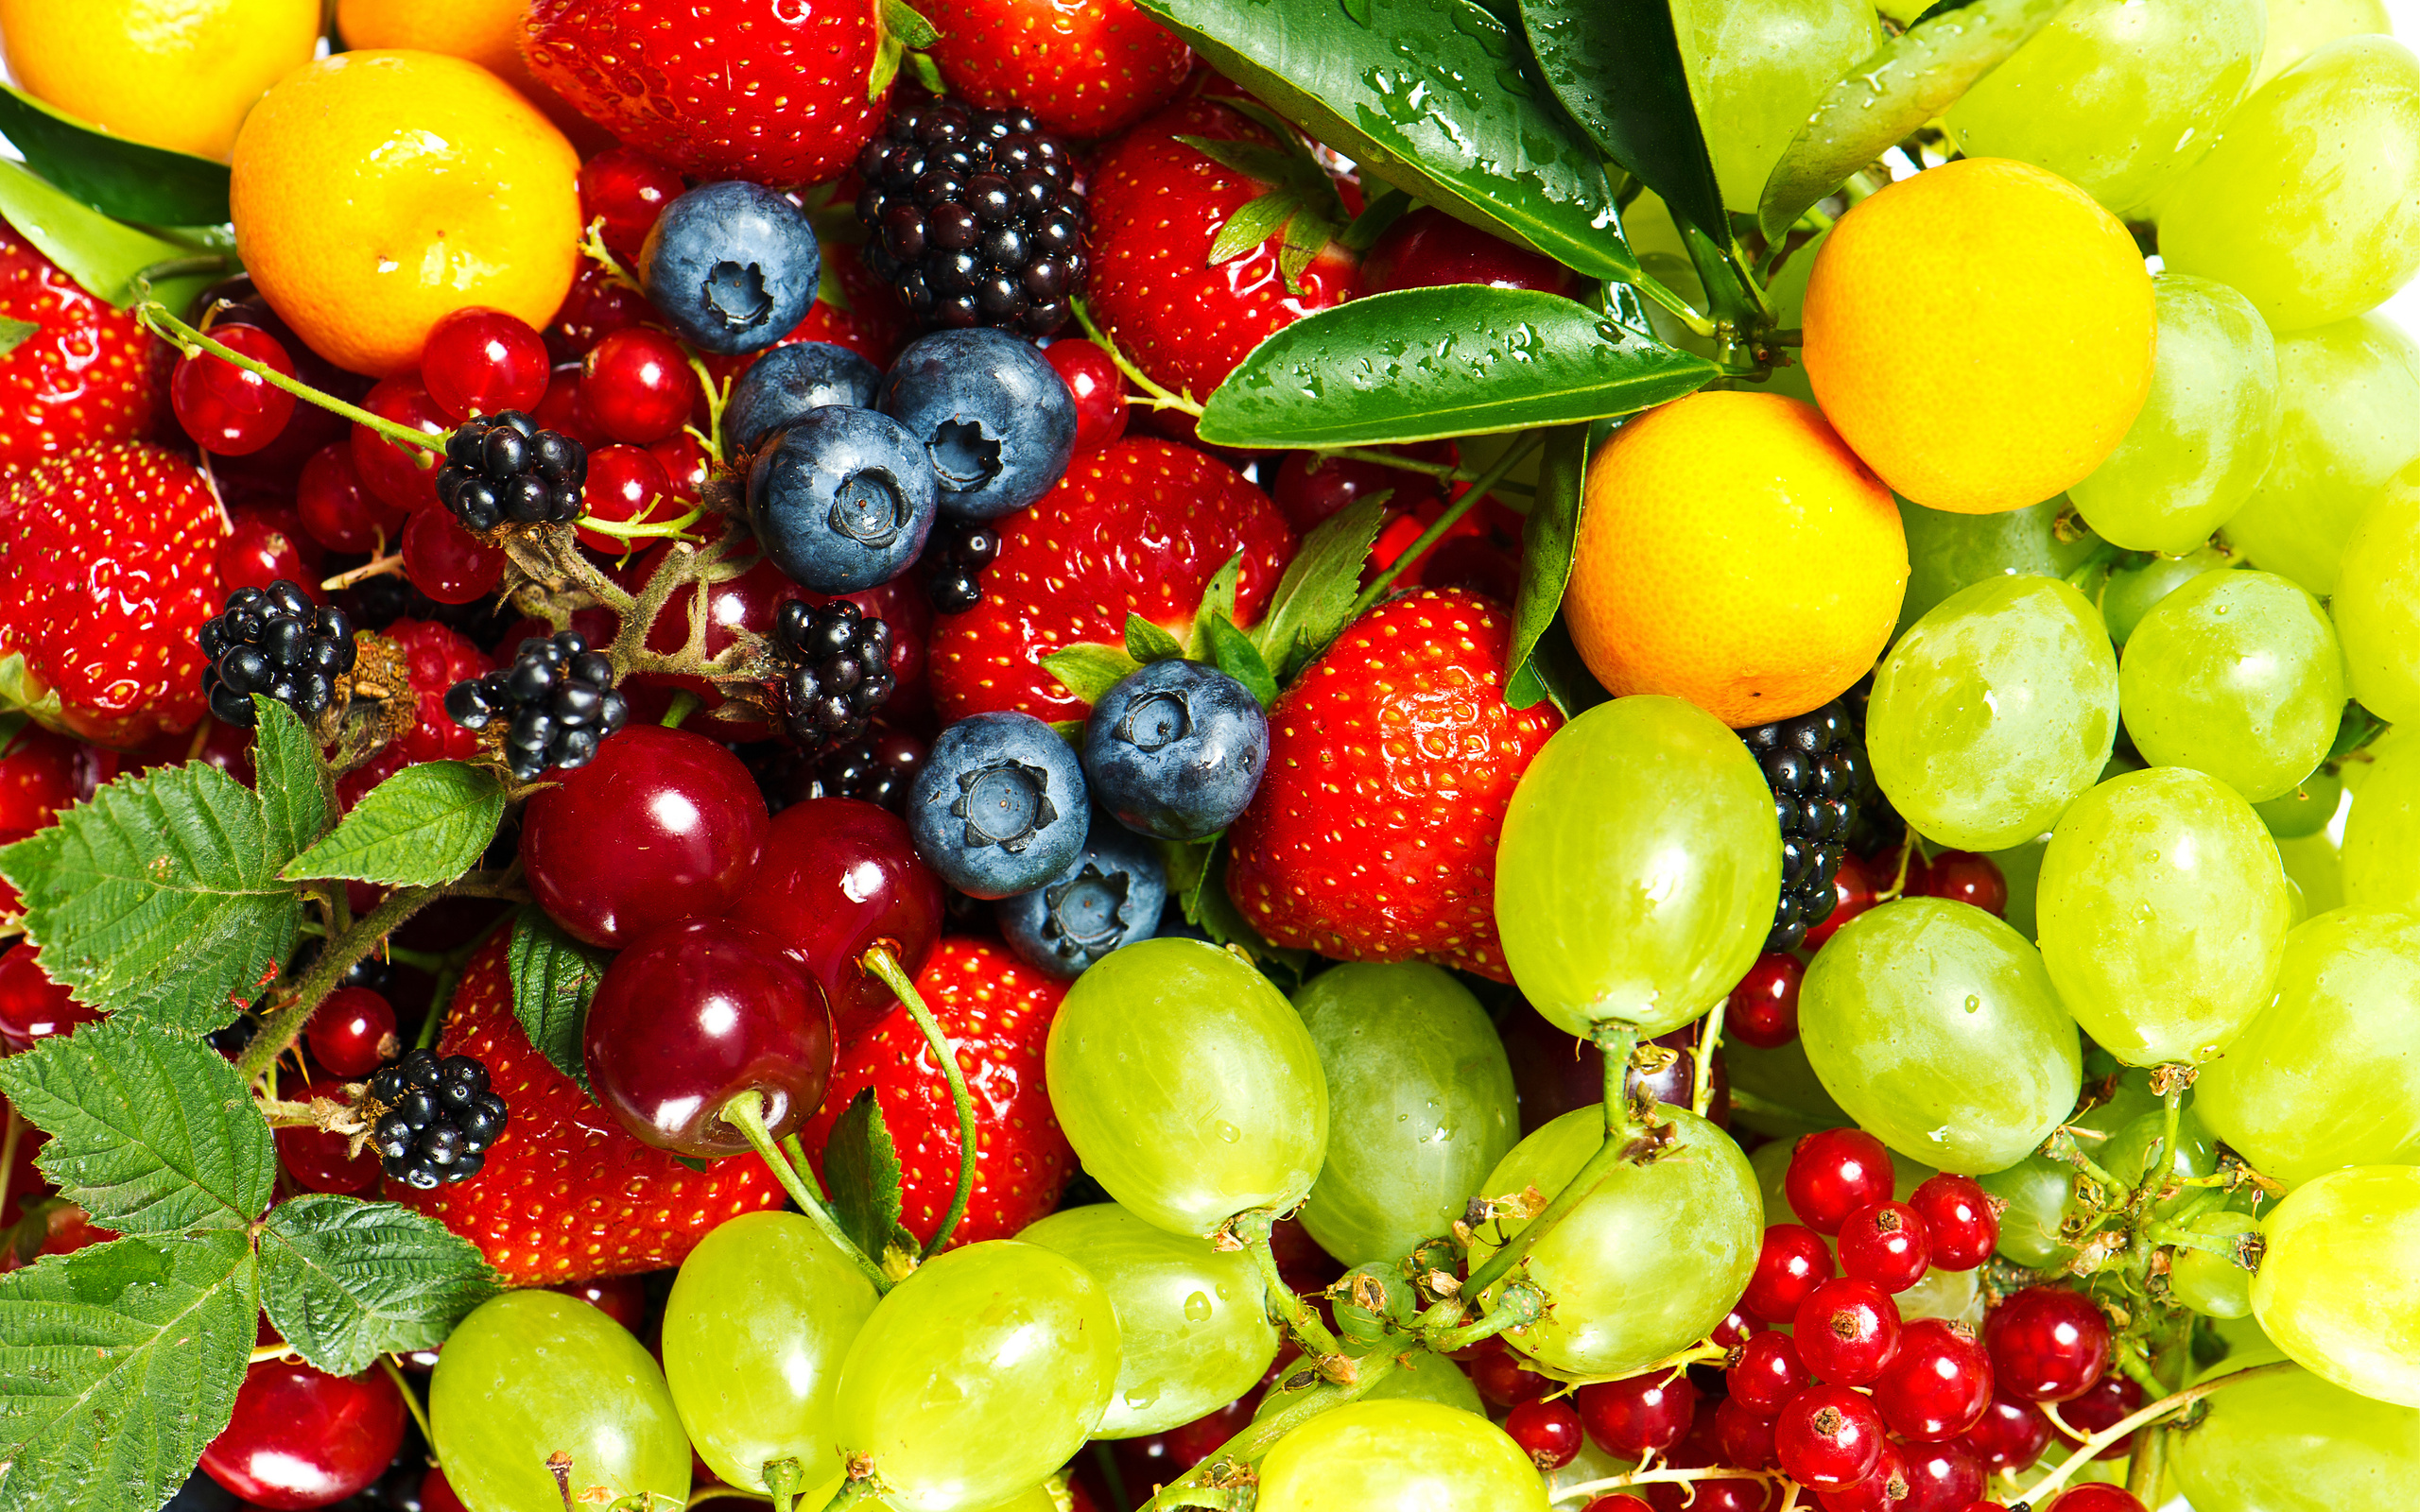 Fruits hd images - 15 Outstanding Hd Fruit Wallpapers